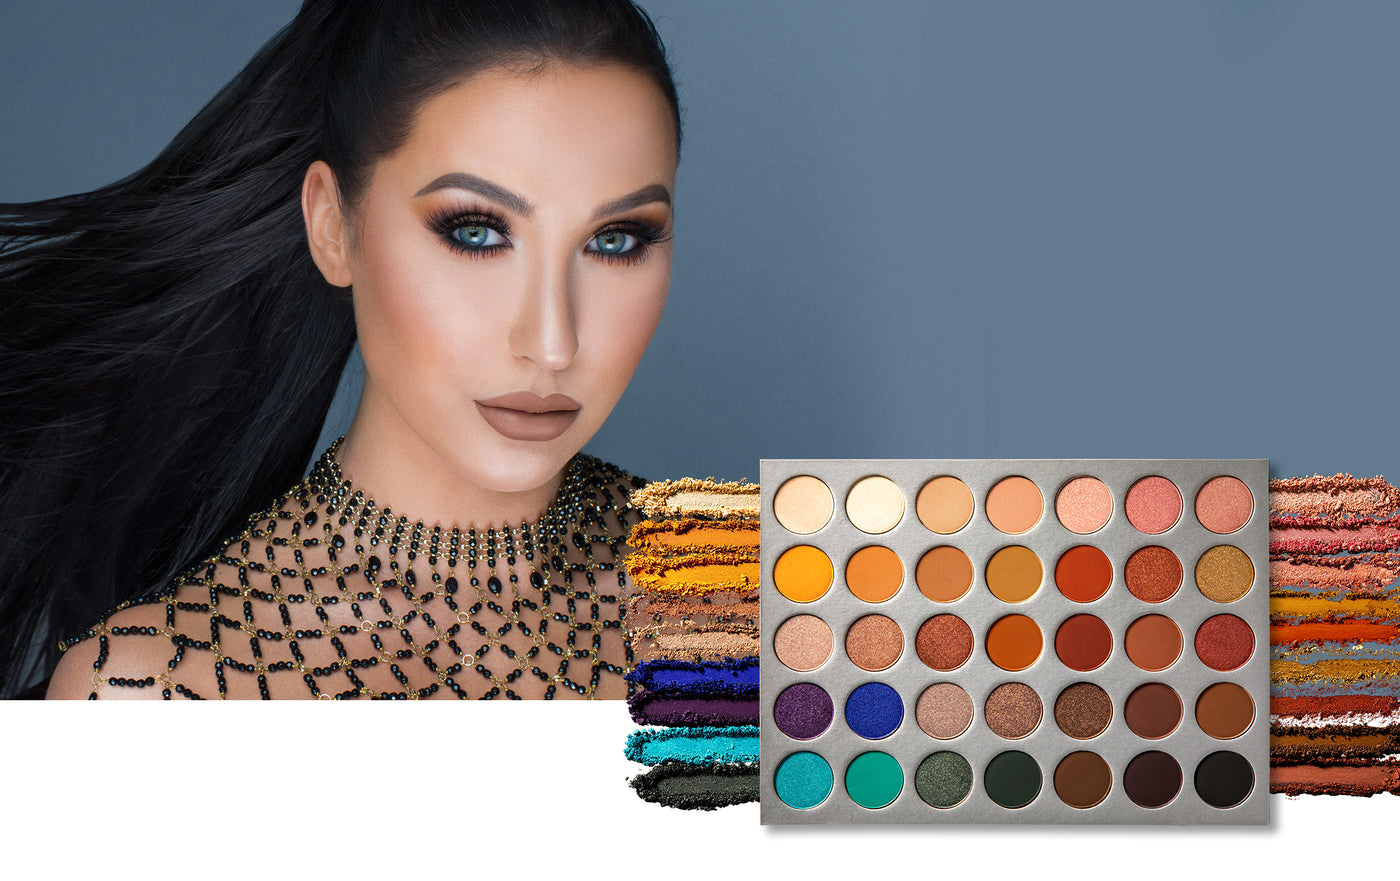 Jaclyn Hill with Jaclyn Hill Eyeshadow Palette